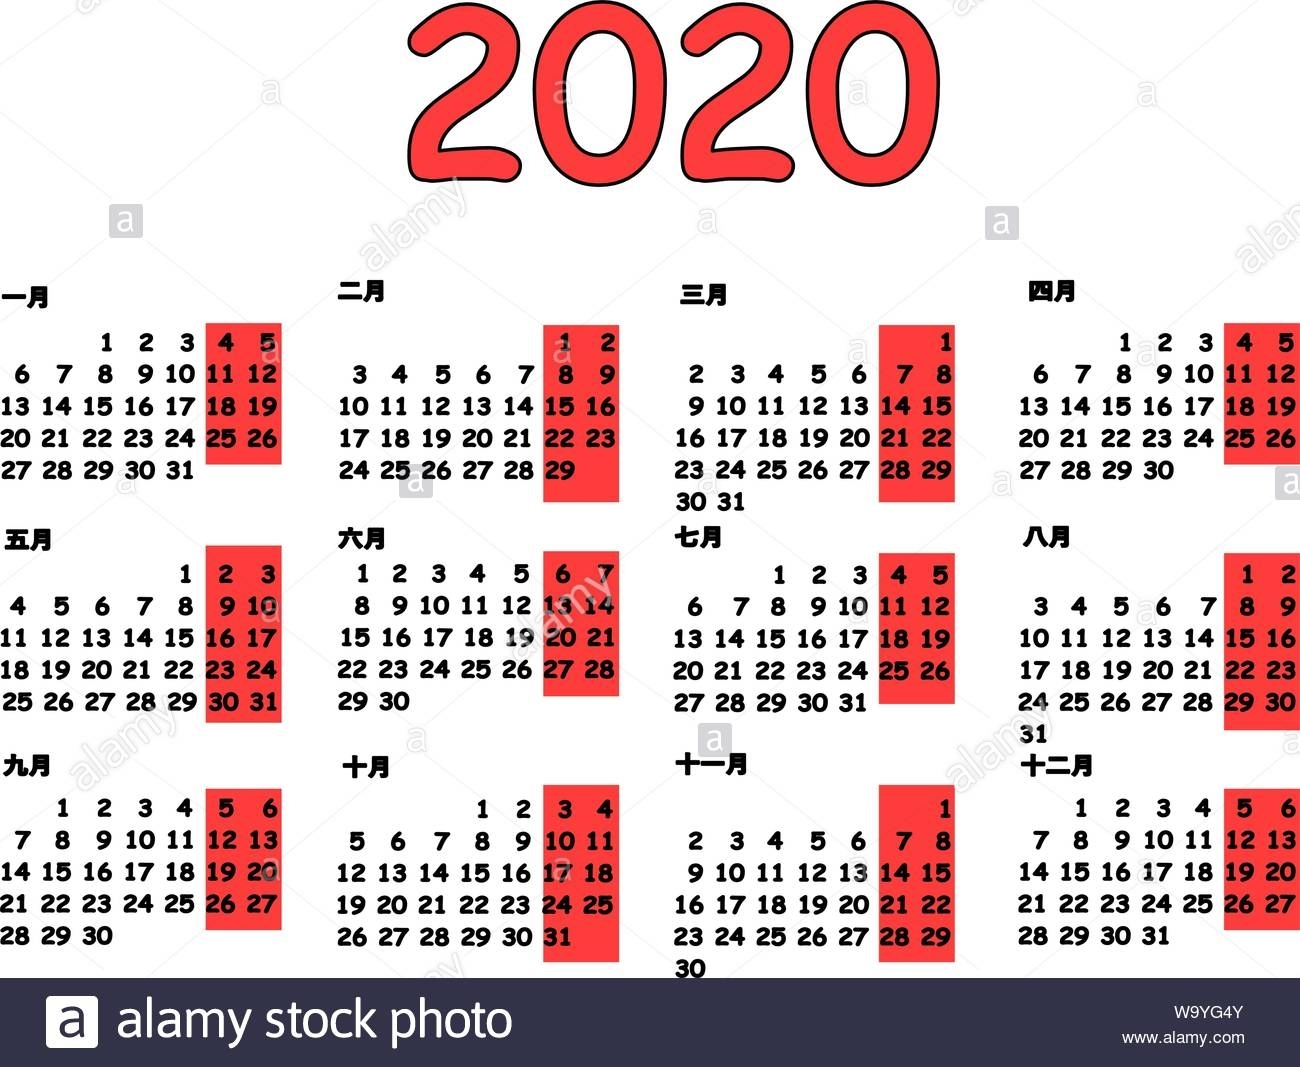 2020 Calendar Grid Chinese Language. Monthly Planning For